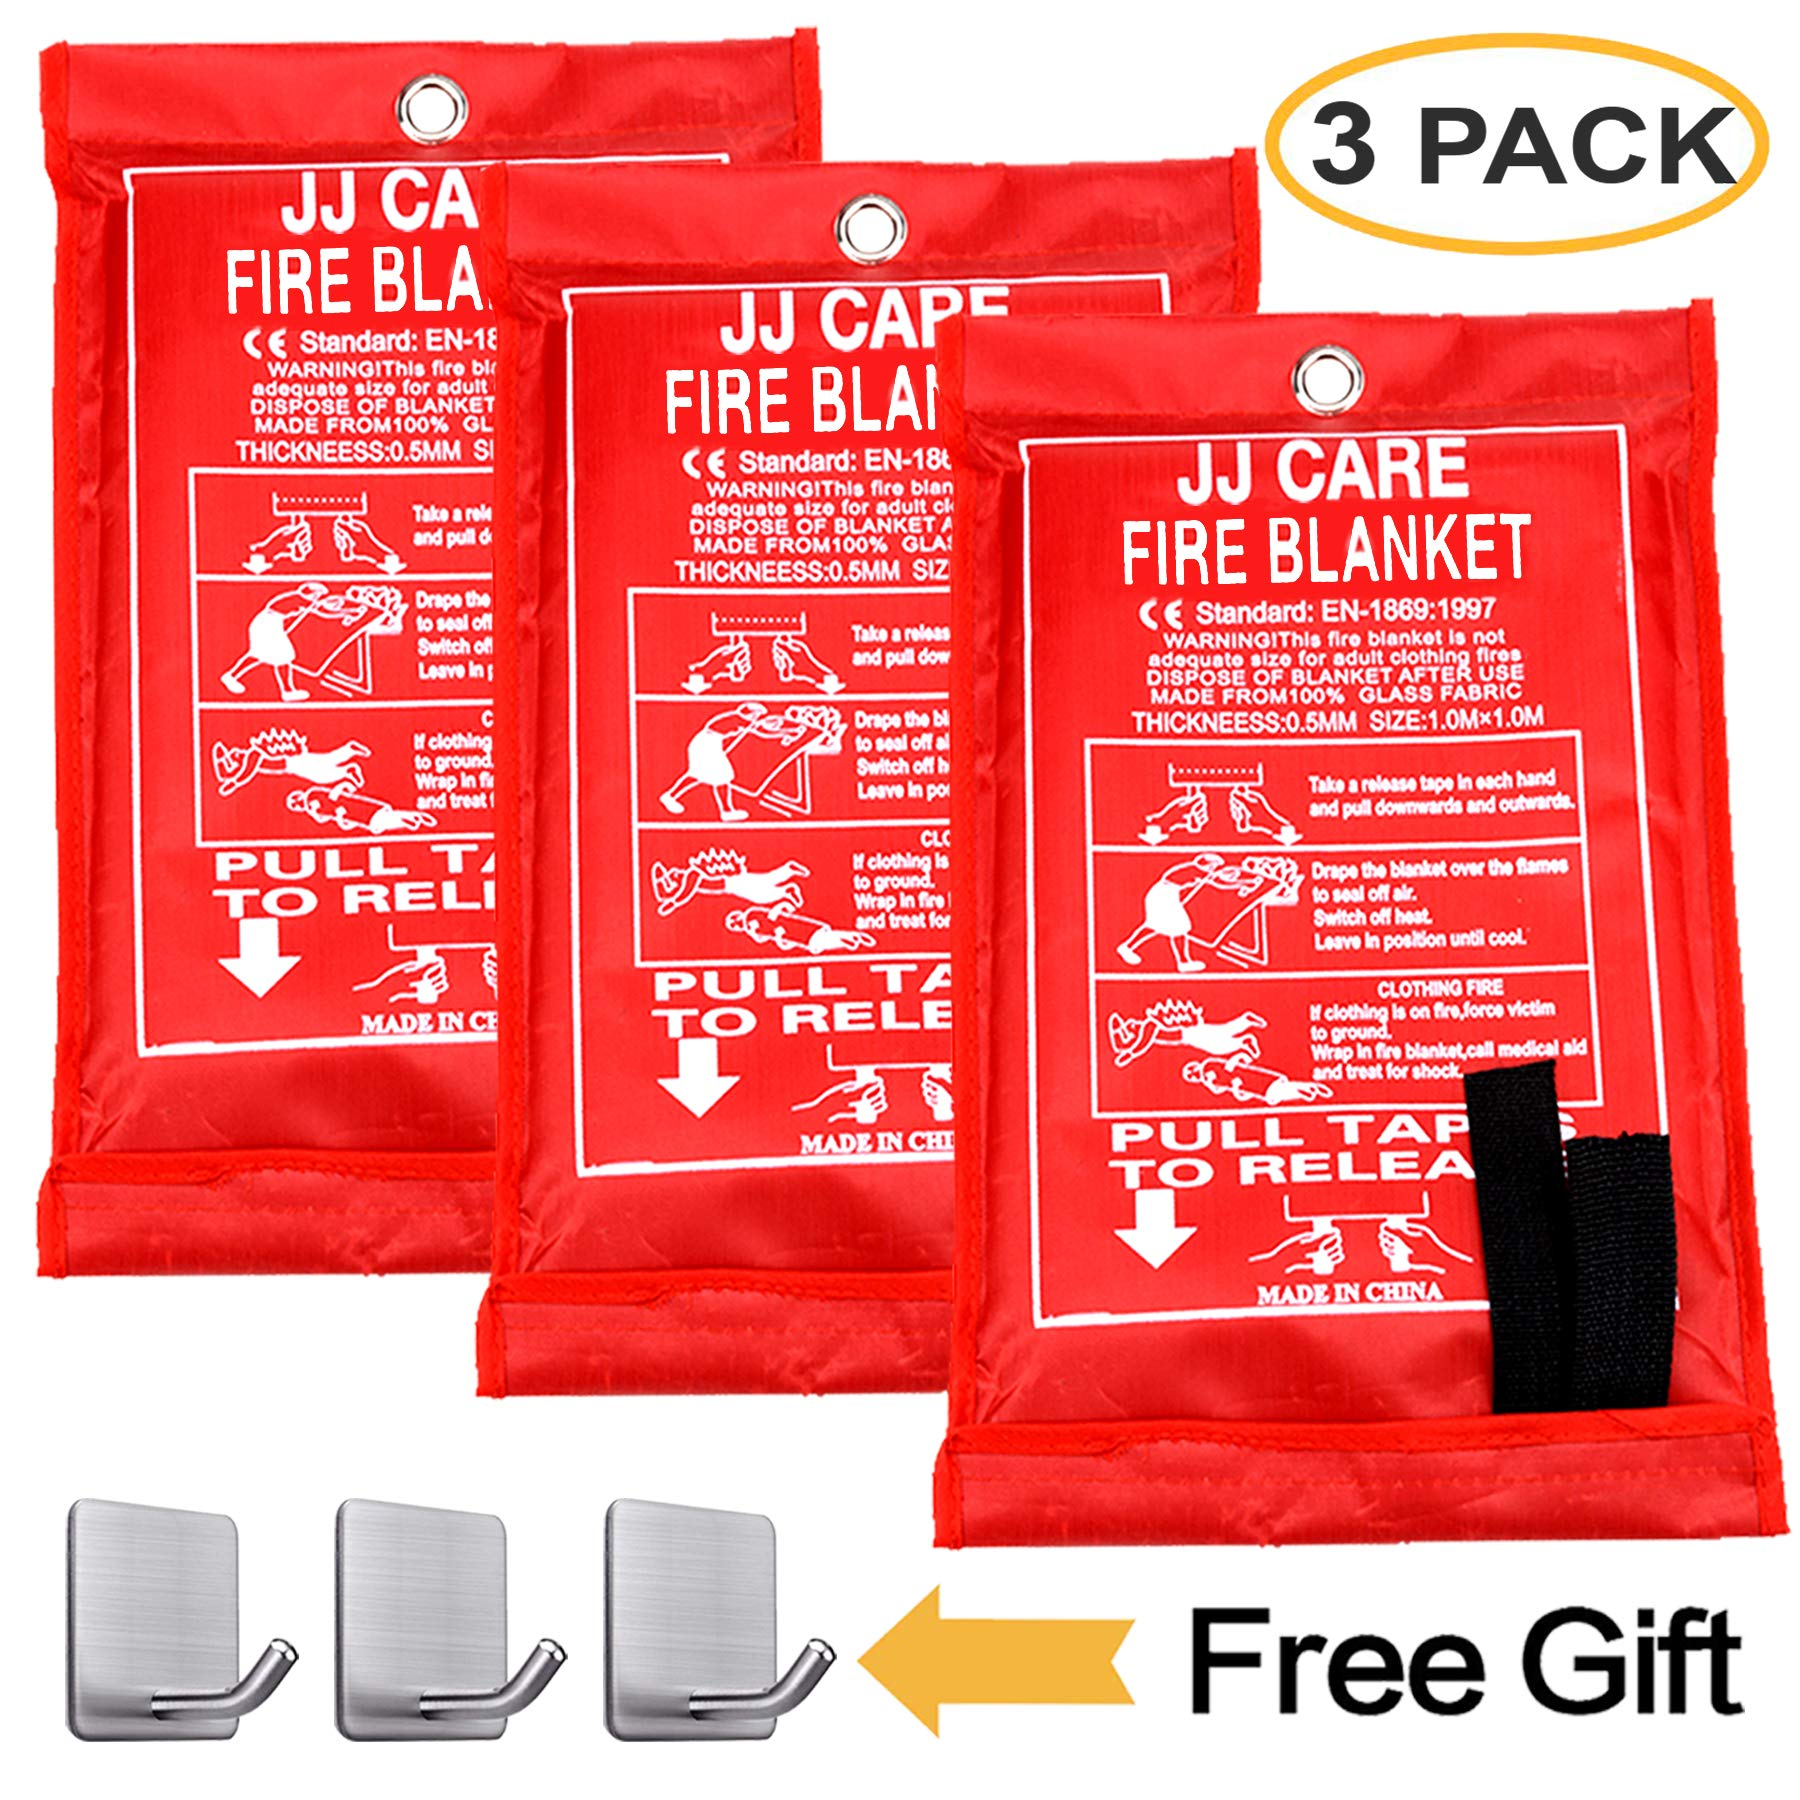 JJ CARE [Pack of 3] Fire Blanket Fire Suppression Blanket Made from Fiberglass Cloth - Suitable for Camping, Grilling, Kitchen Safety, Car and Fireplace Fire Retardant Blanket for Emergency 40''x40'' by JJ CARE